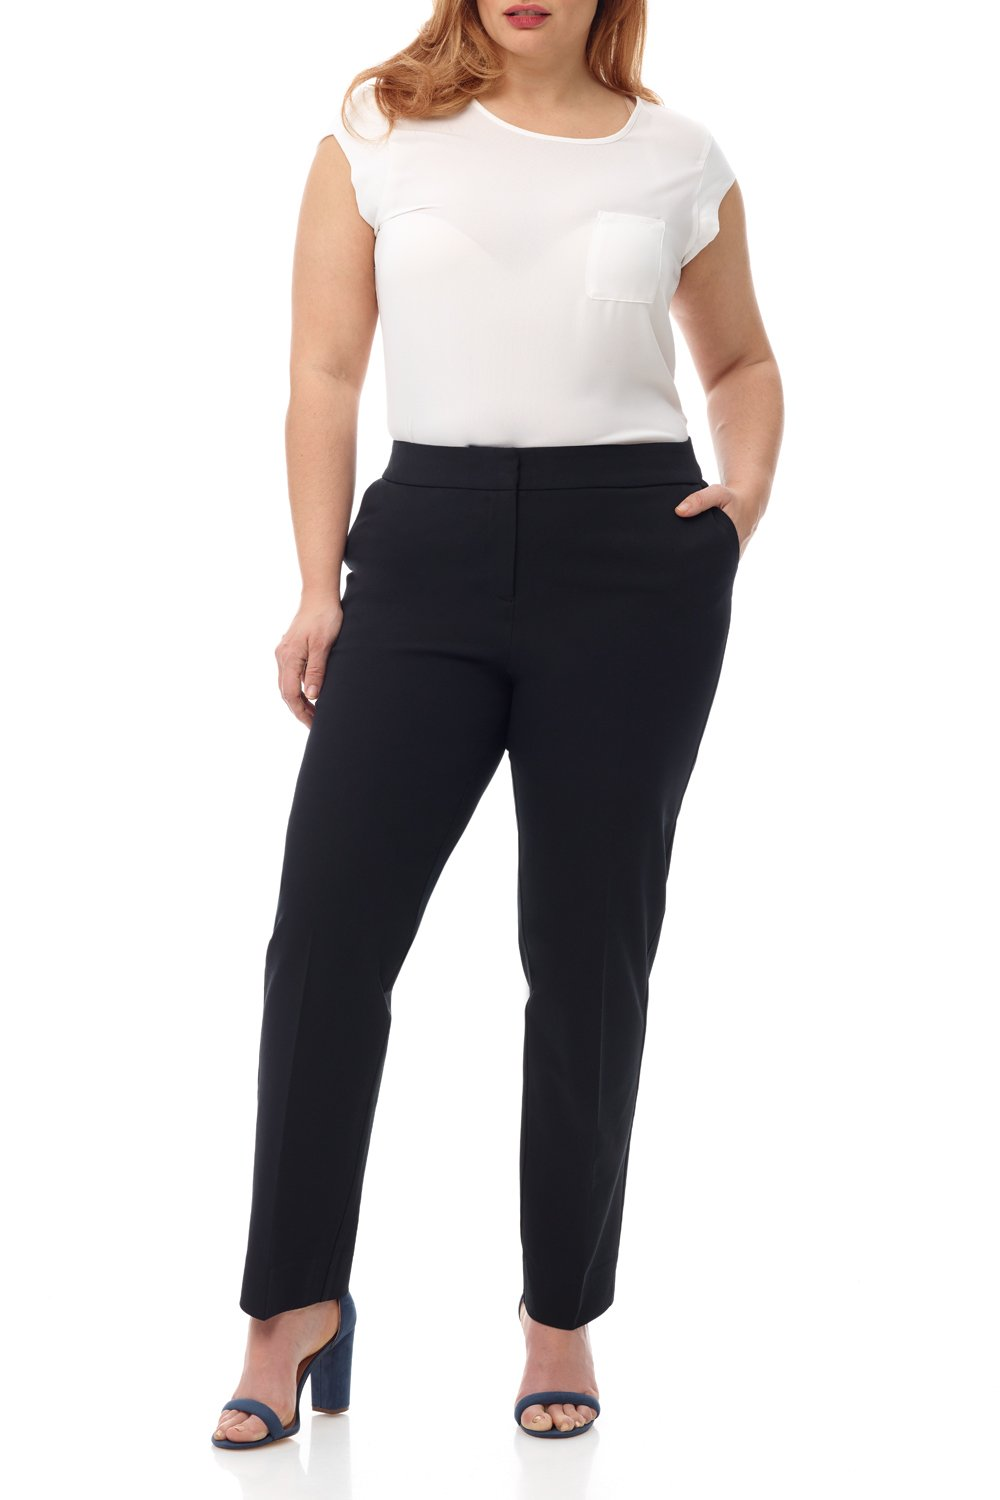 Rekucci Curvy Woman Plus Size Easy Chic Zip Front Pant in Ultimate 360 Degree Stretch Cotton (14W,Black)